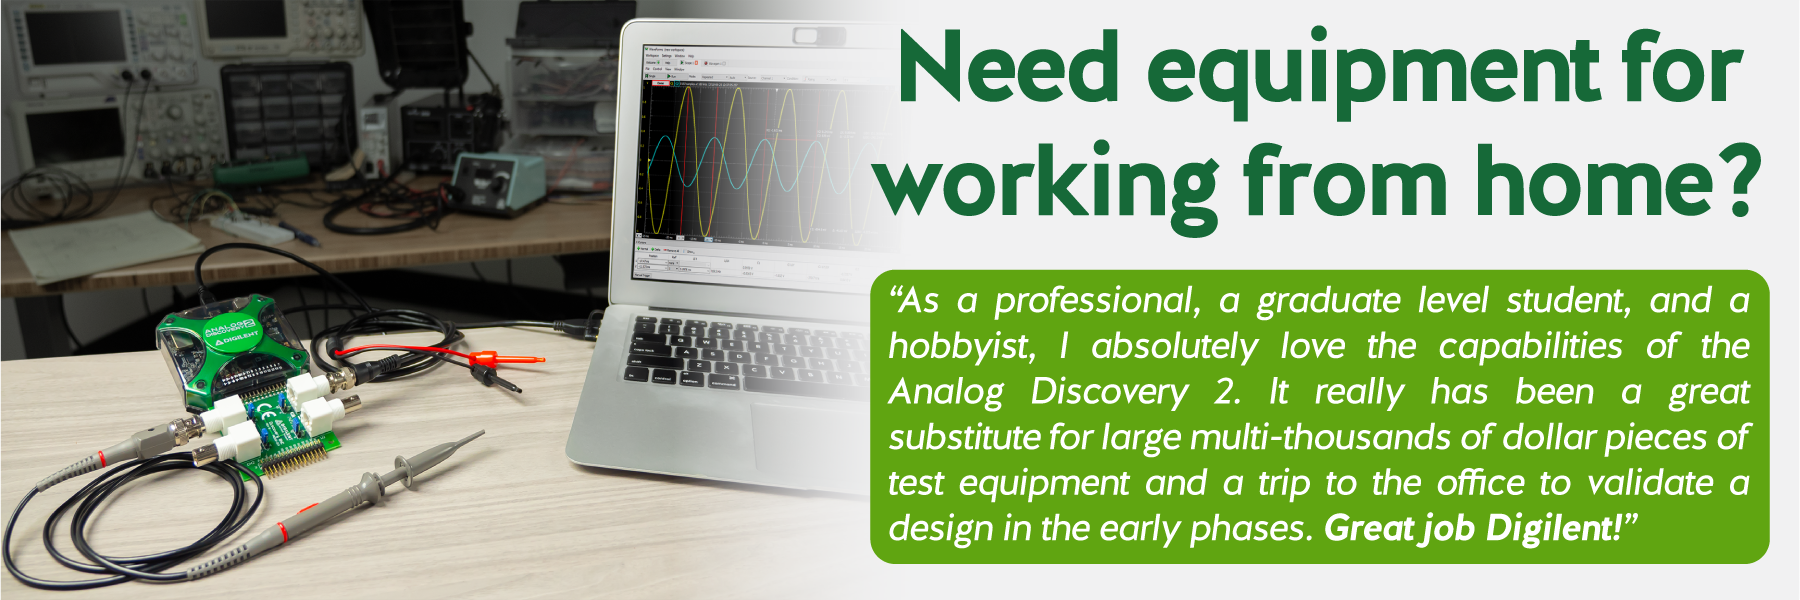 Need equipment for working from home?